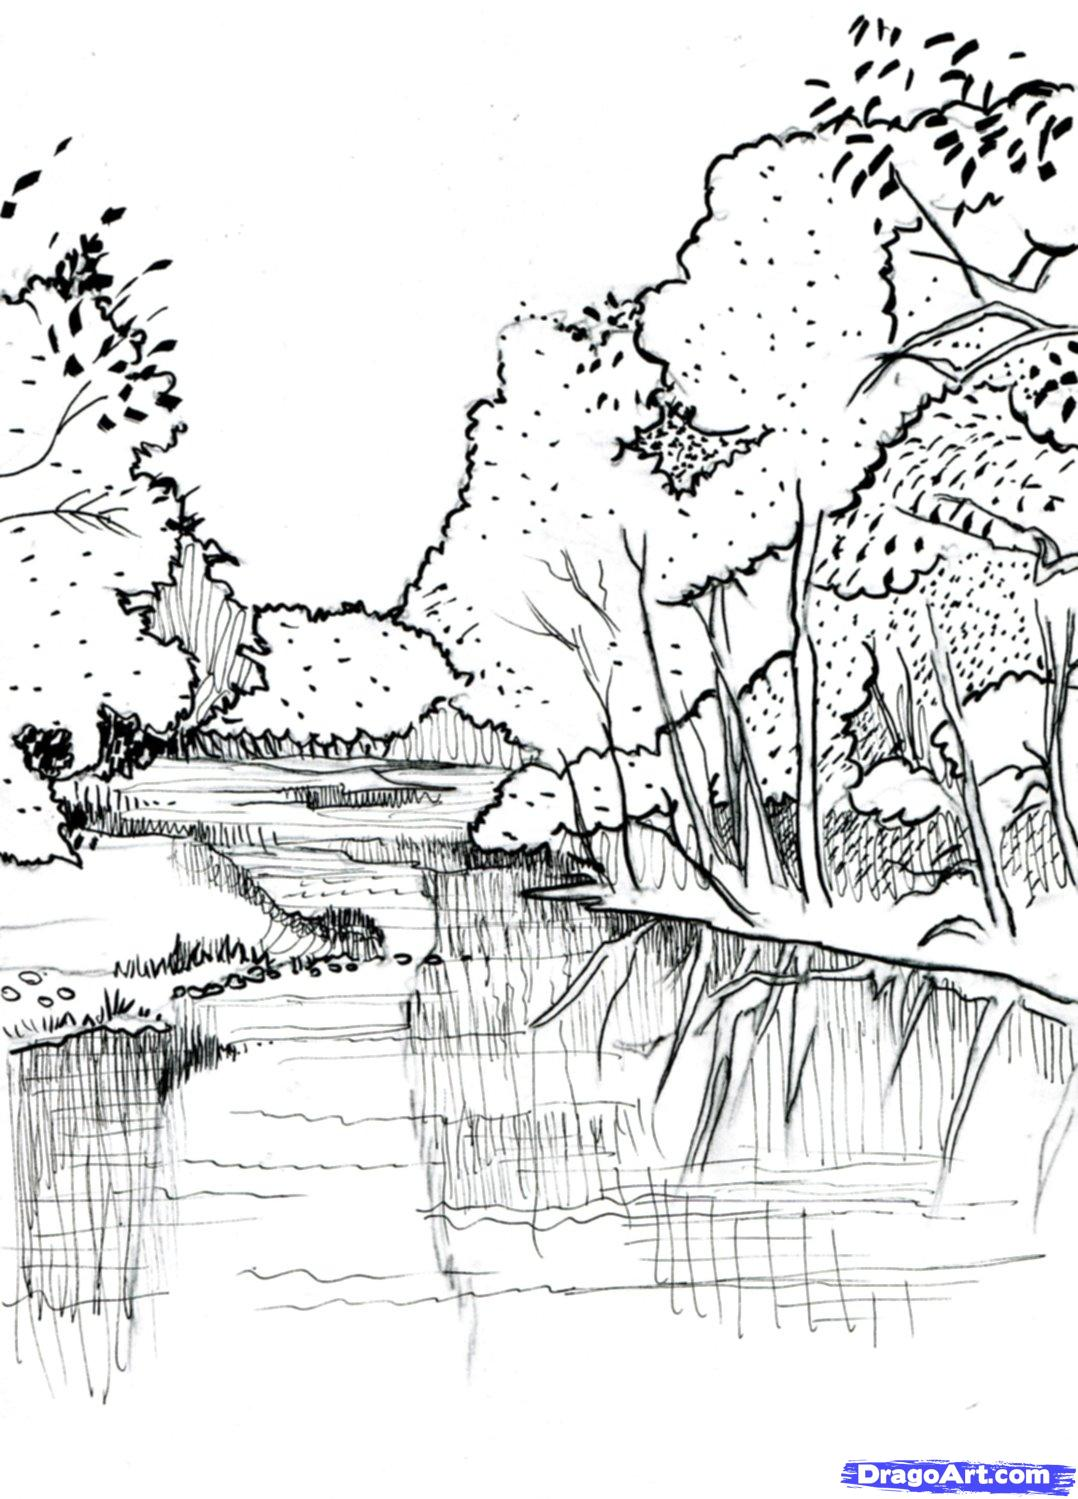 Drawn river Draw by catlucker How Step